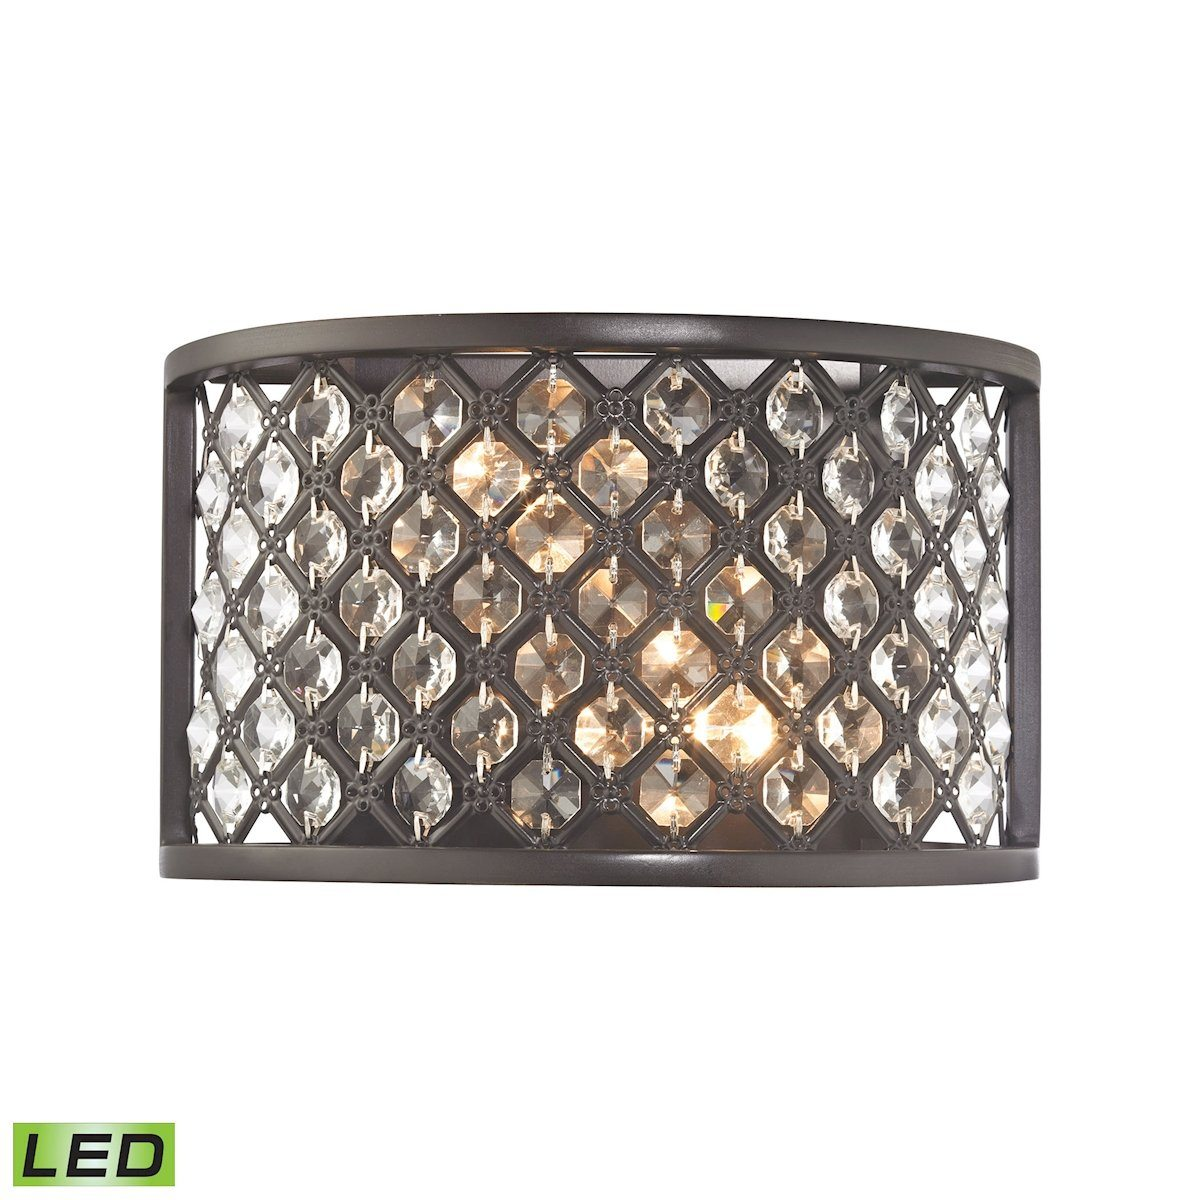 Genevieve 2 Light LED Wall Sconce In Oil Rubbed Bronze Wall Sconce Elk Lighting